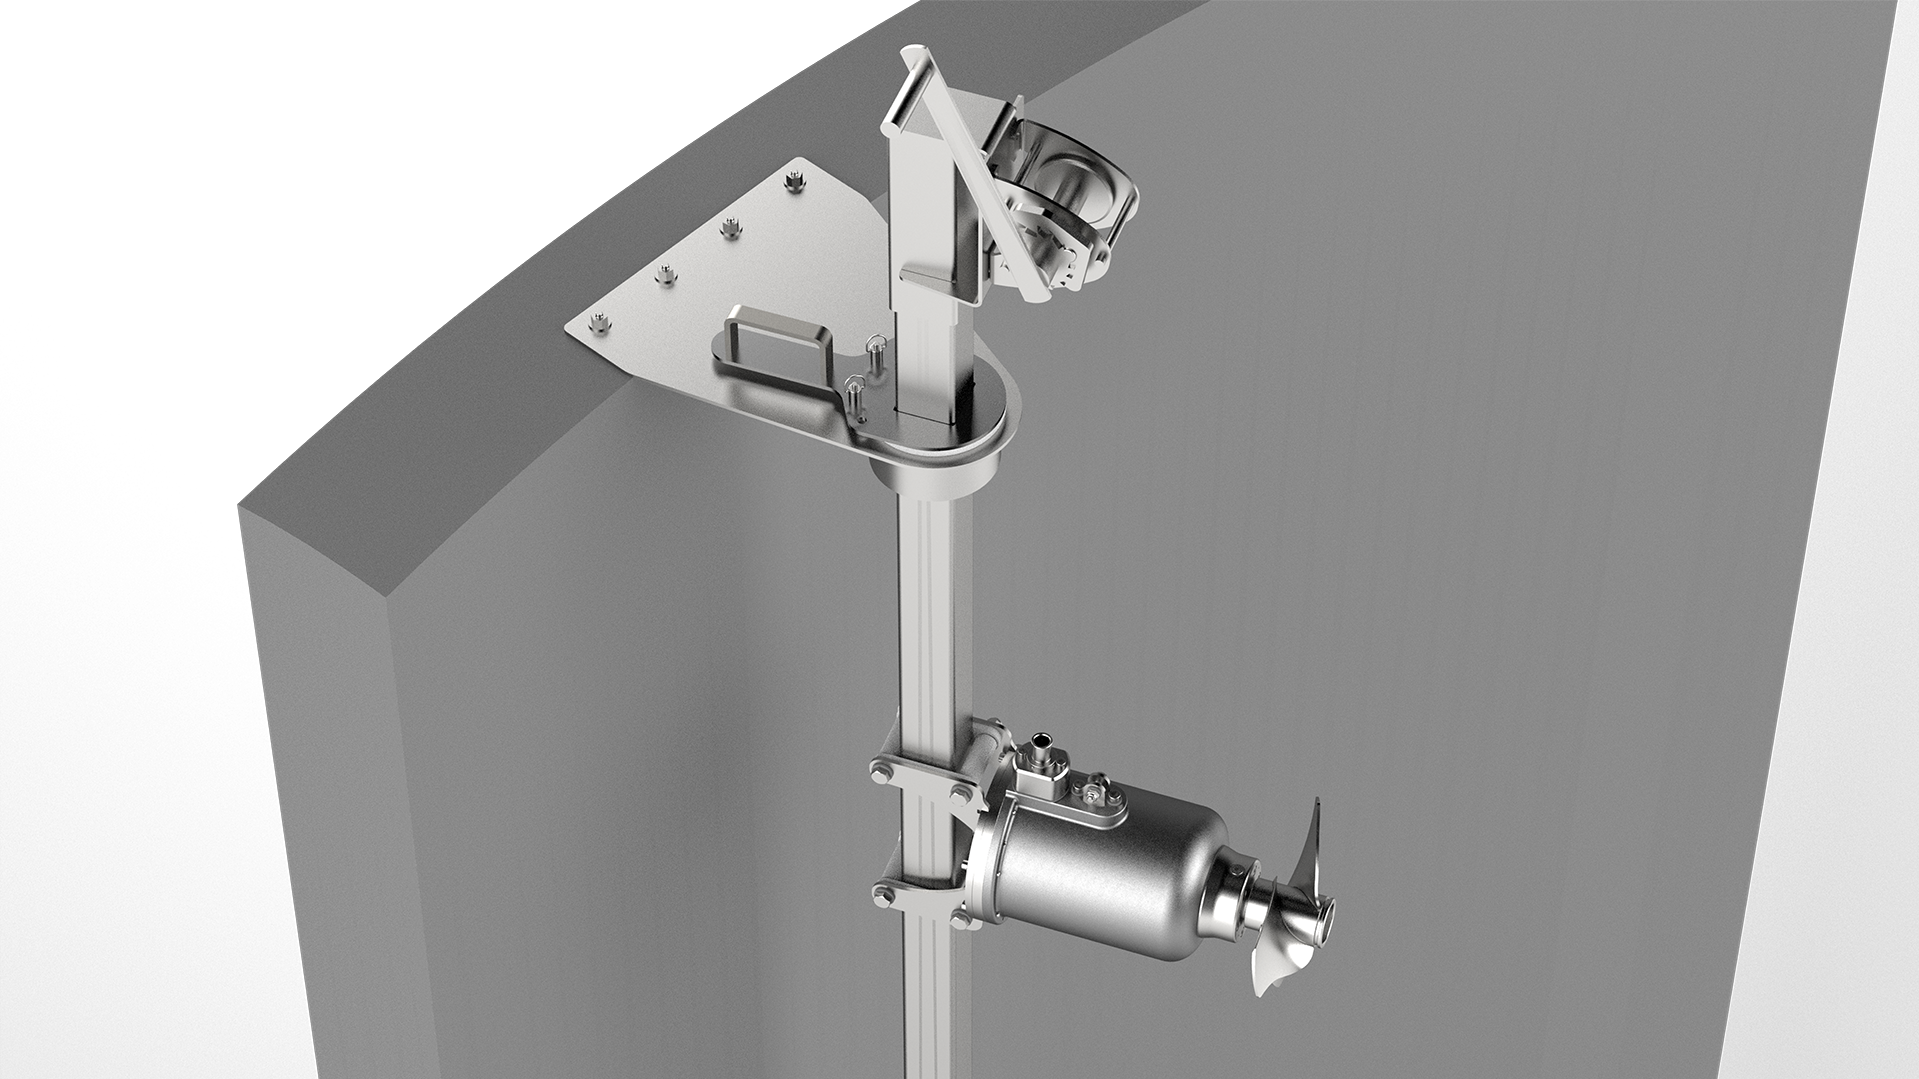 Gallery image 1 - Suspension mounting rame EV3 light *  For open concrete tanks (not gastight) *  Suitable for tank depths up to 6 m *  Lateral rotation +/- 60° *  Quick and easy maintenance by pulling up the agitator